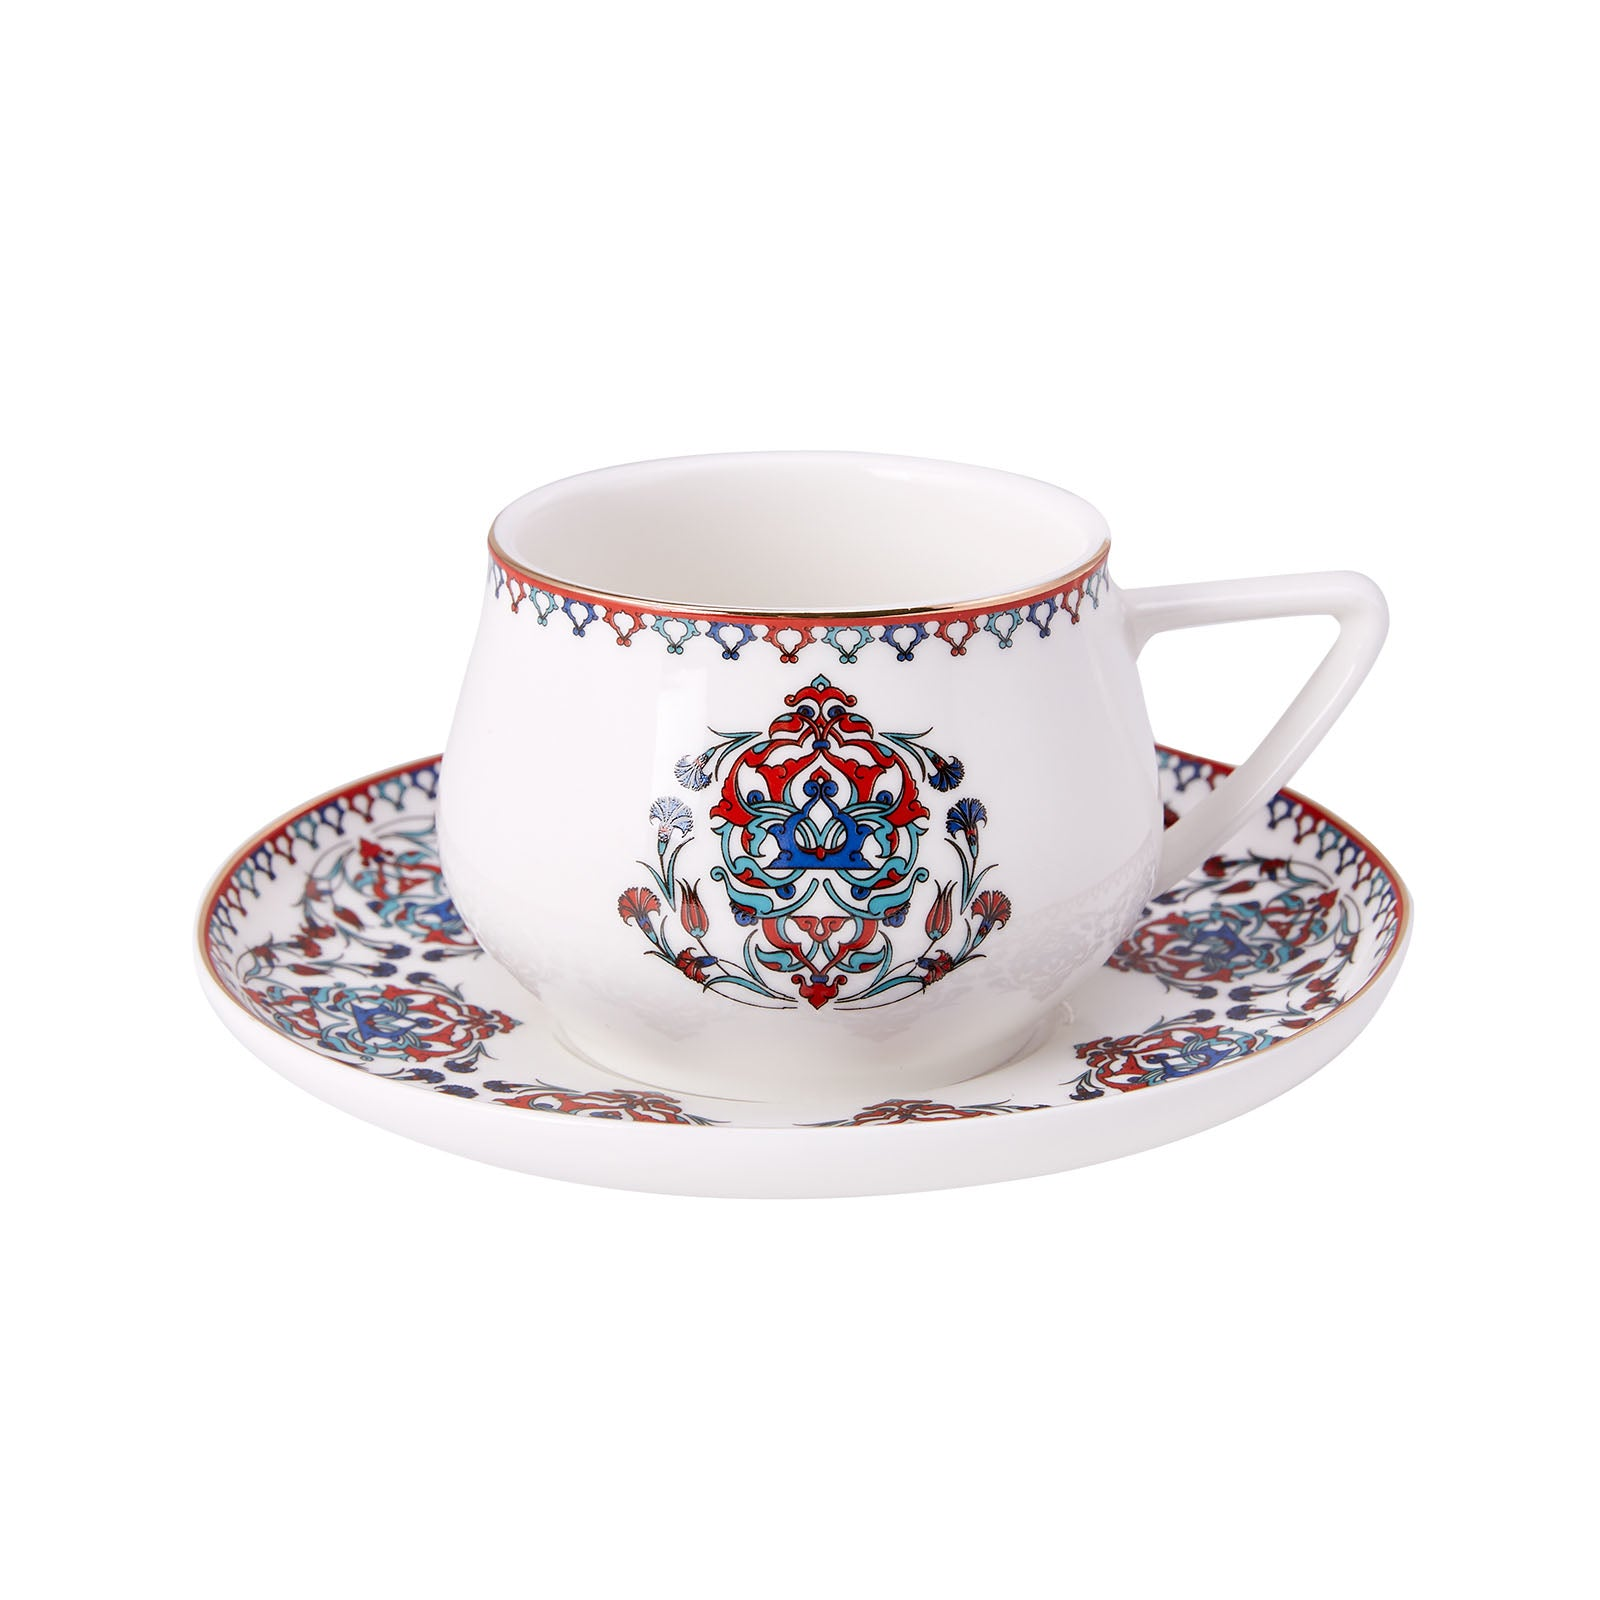 Nakkaş 4-Person Tea Cup Set 153.03.07.5033 -  طقم فناجين شاي 4 أشخاص من نقّاش - Shop Online Furniture and Home Decor Store in Dubai, UAE at ebarza